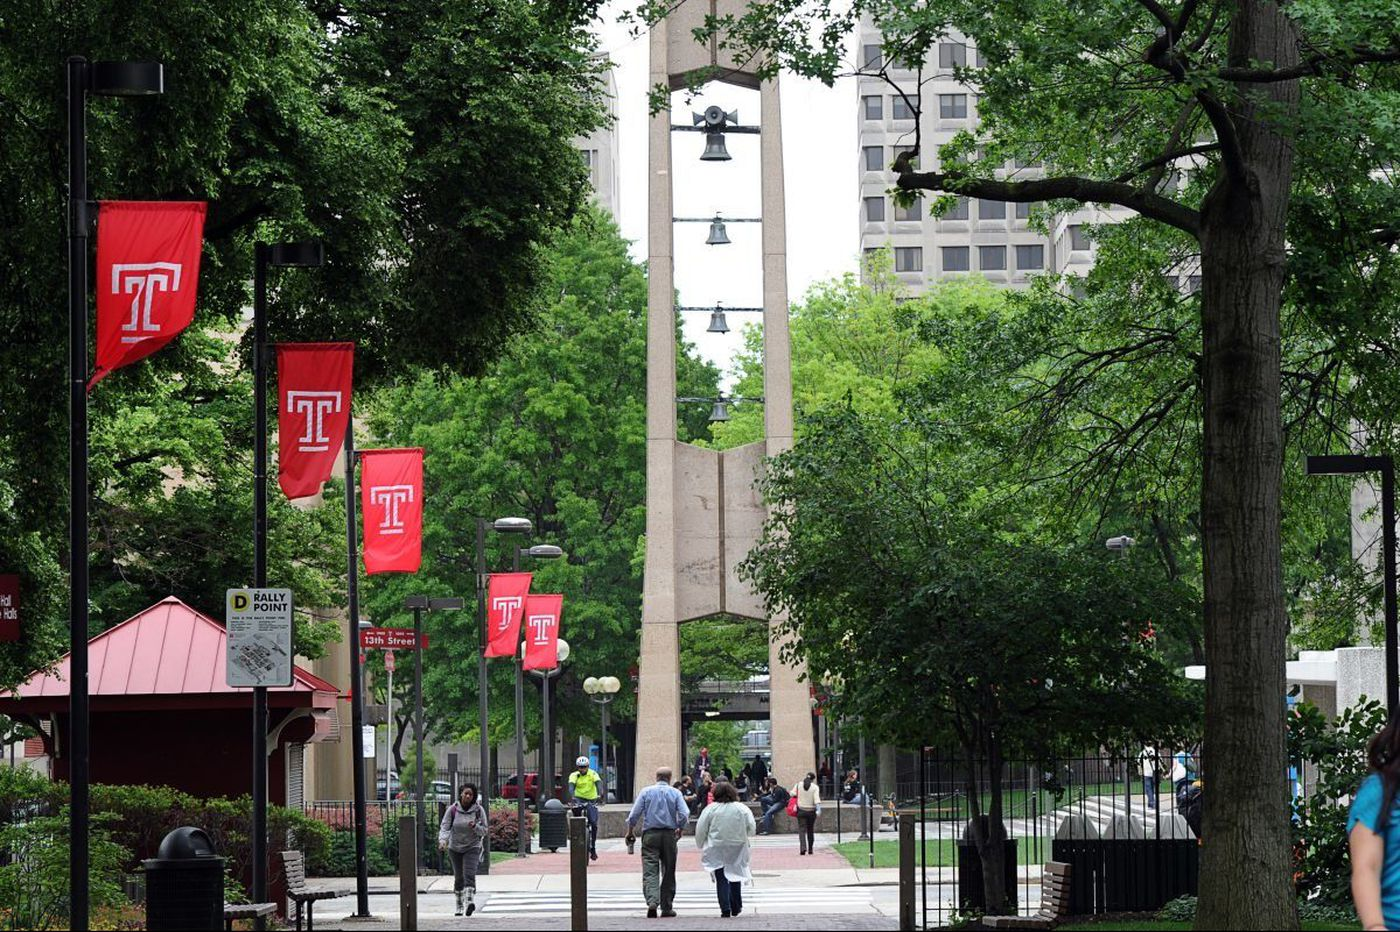 Temple finds more misreporting for U.S. News magazine rankings